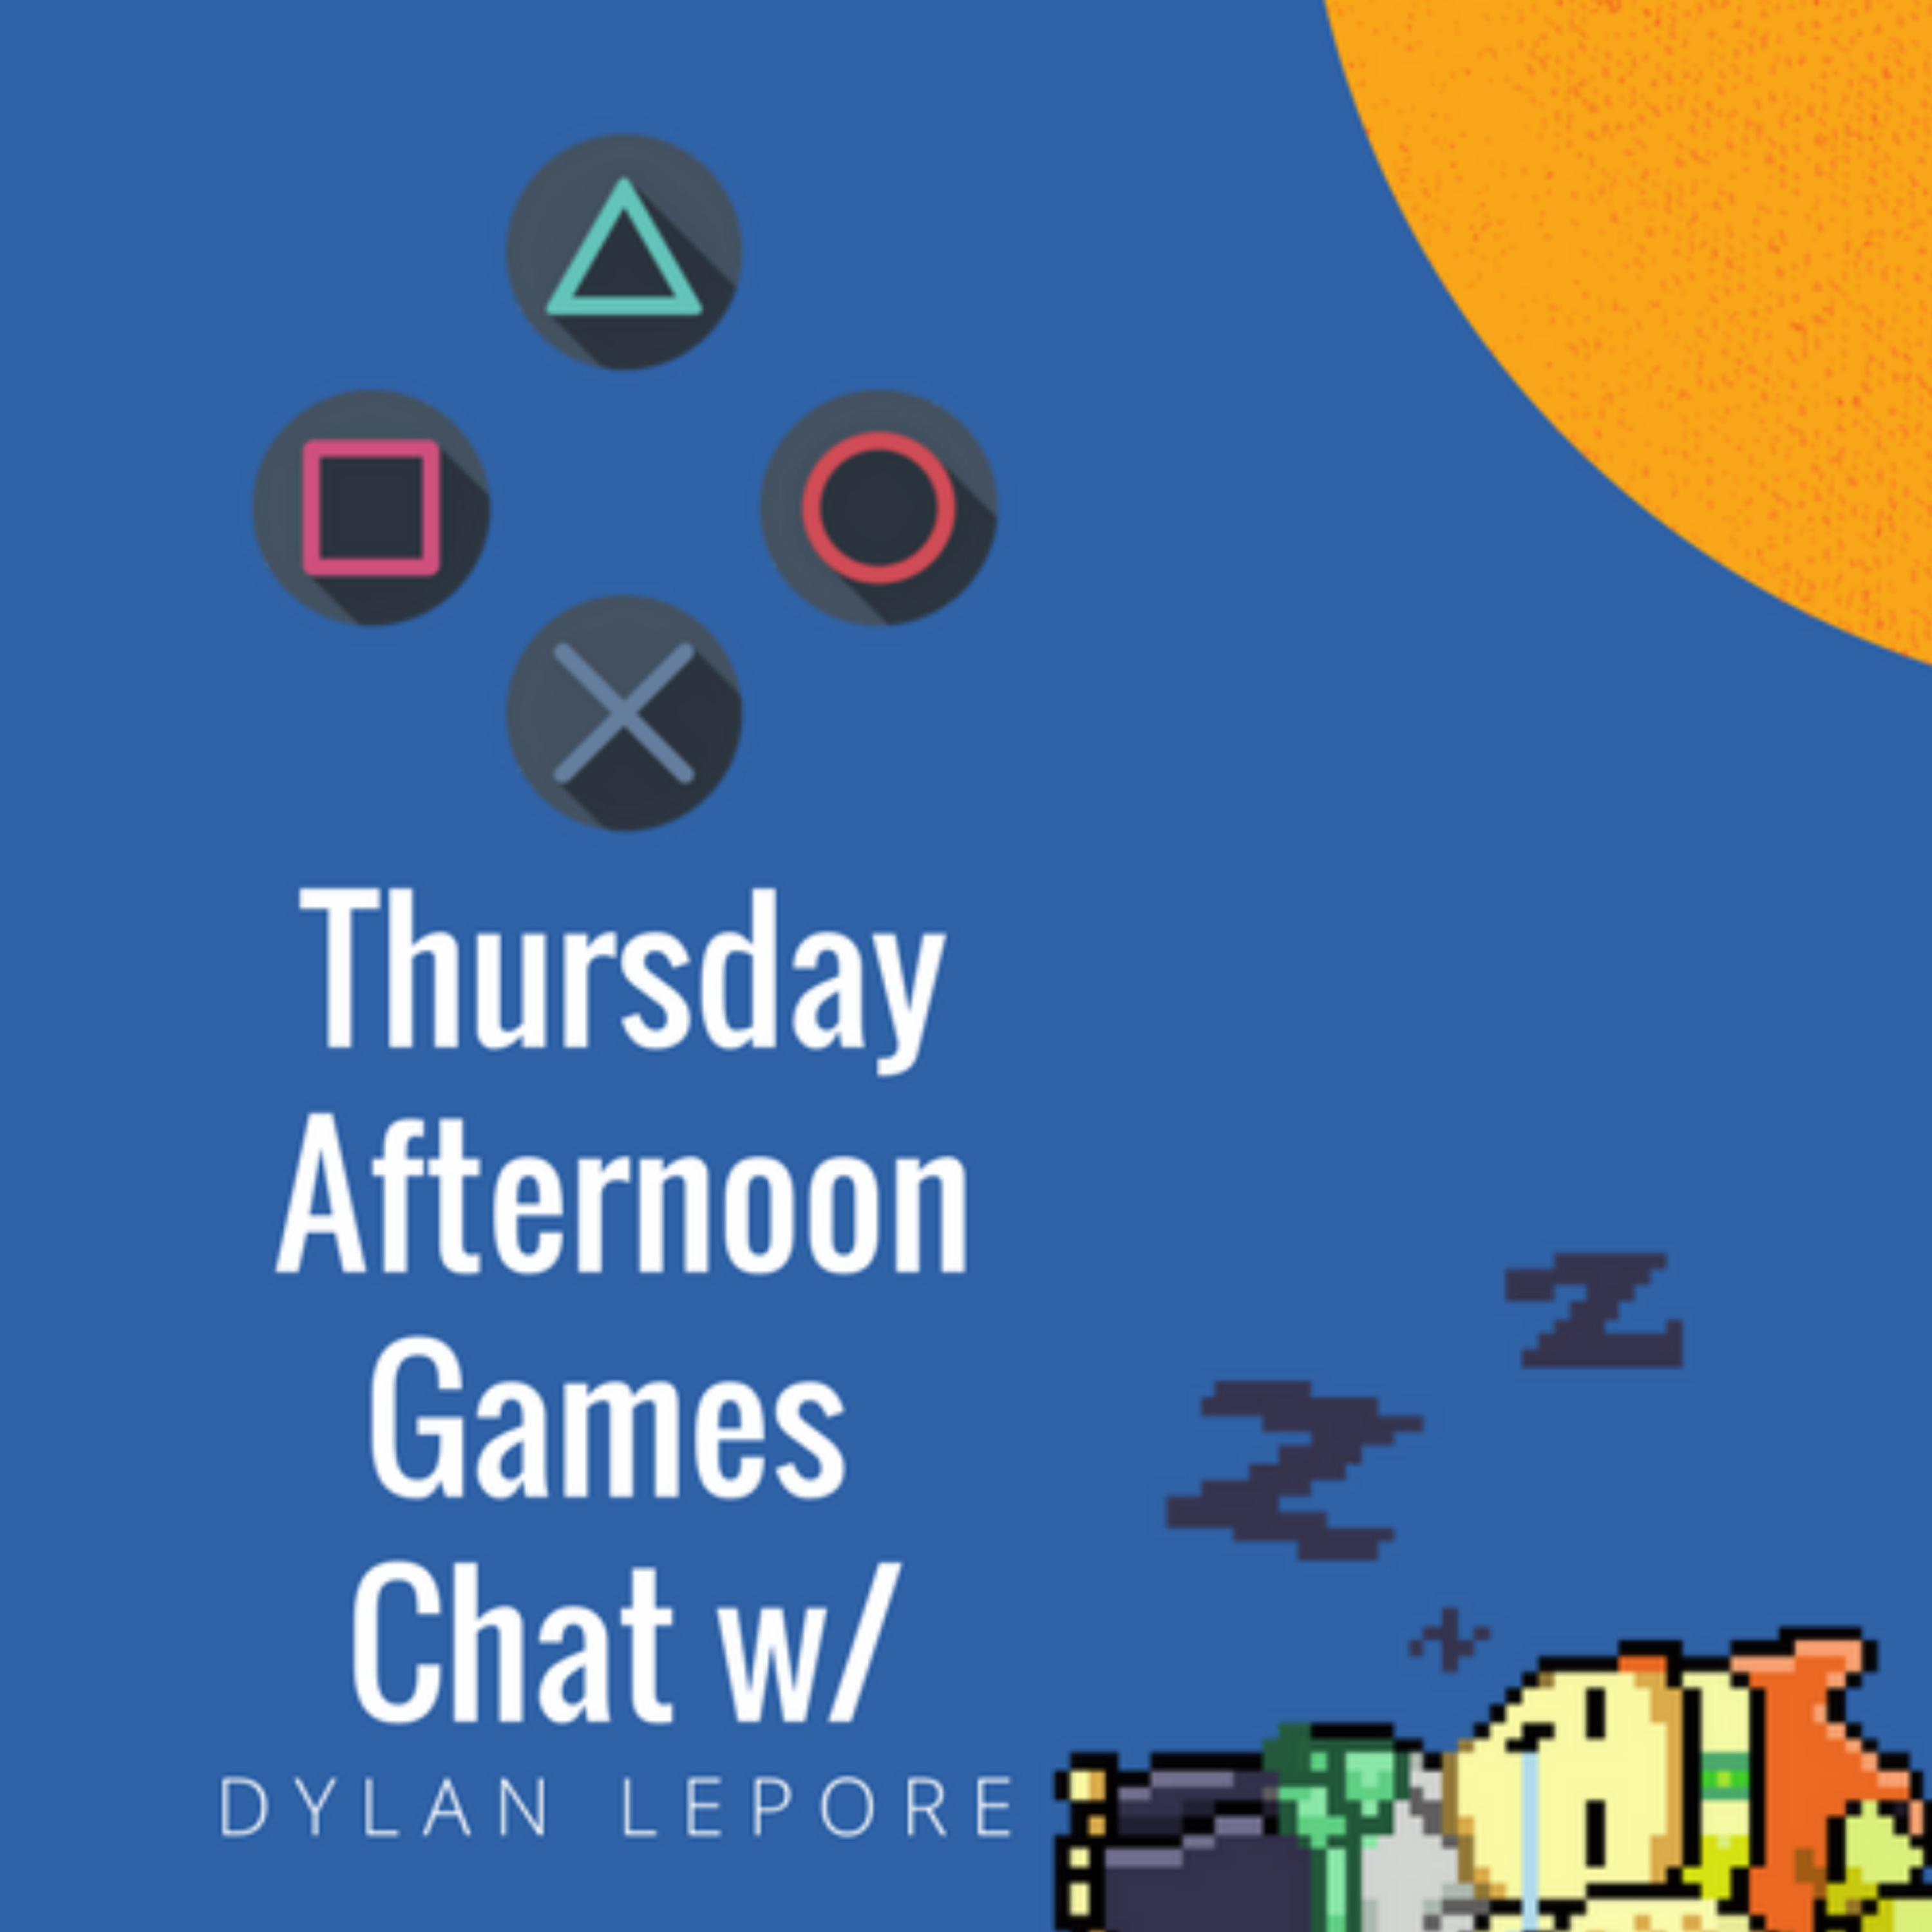 WOLFENSTEIN: THE NEW ORDER REVIEW | the Thursday Afternoon Games Chat W/ Dylan Lepore Ep. 7